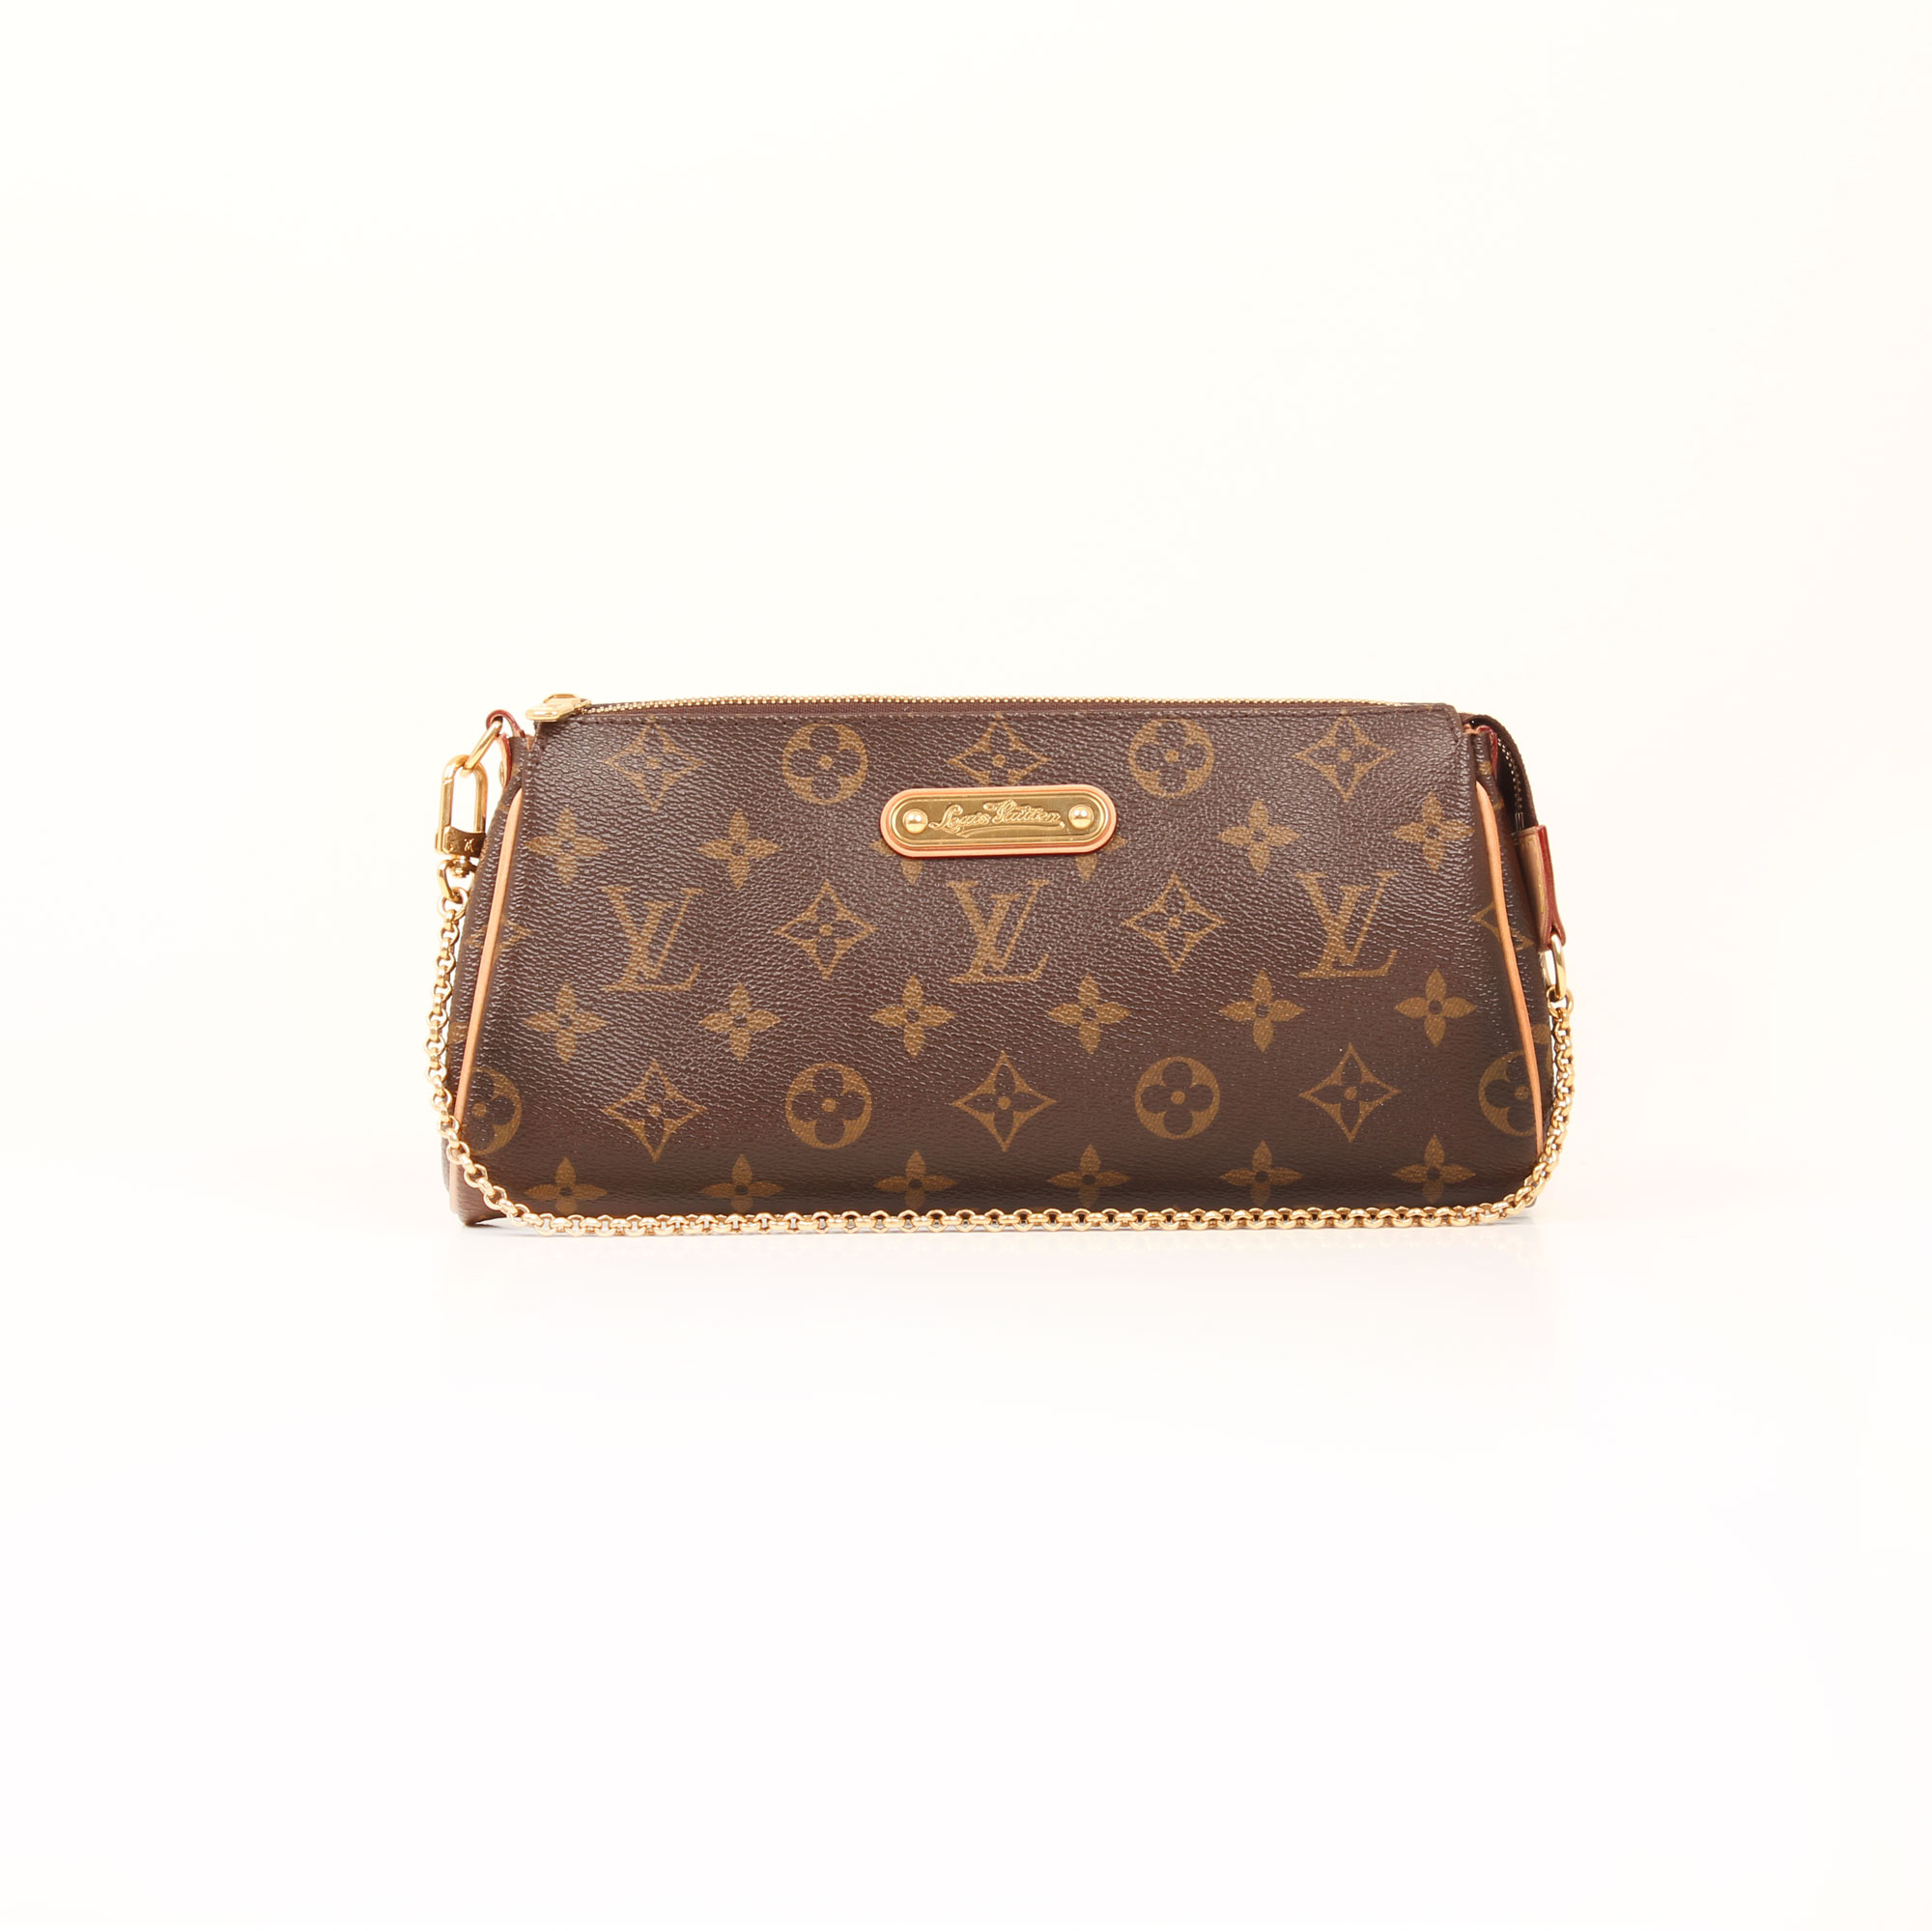 pochette-louis-vuitton-eva-monogram-frontal